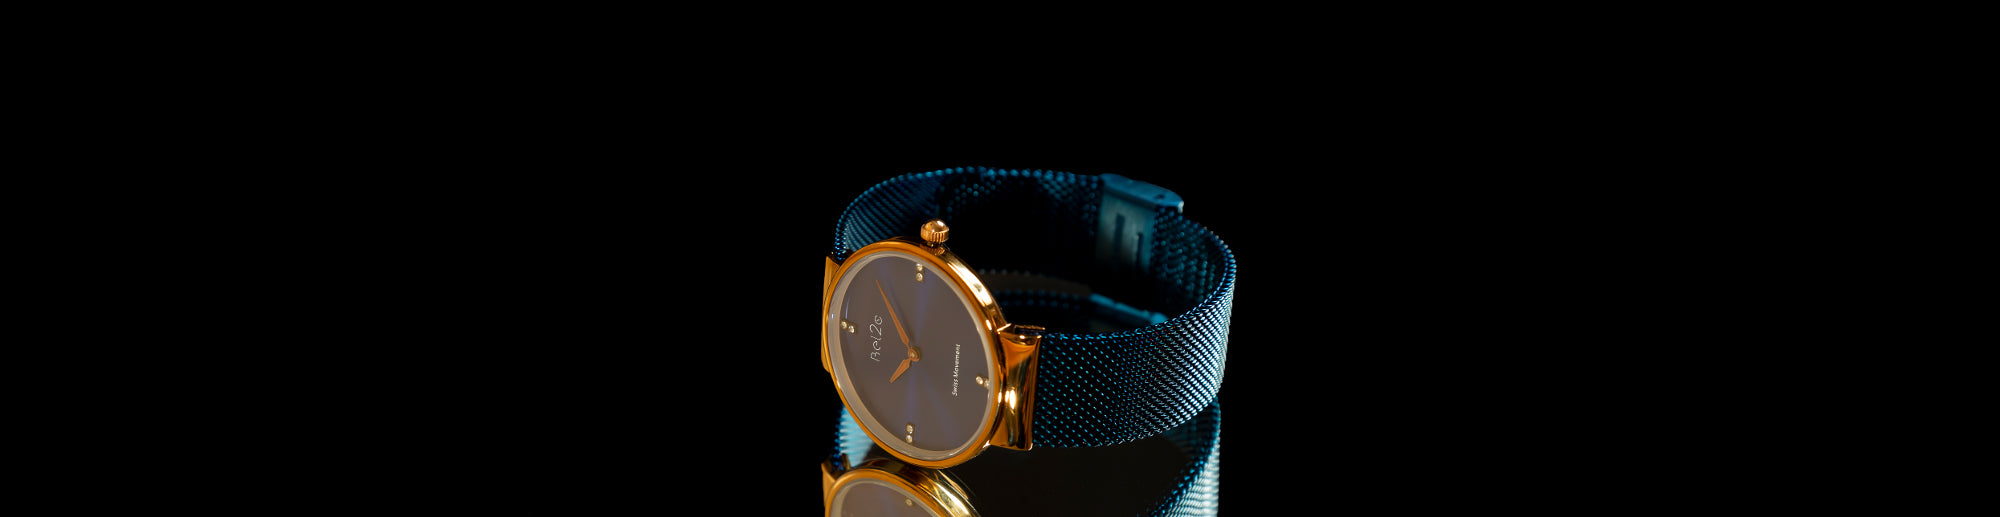 Ladies Watch with Blue Dial